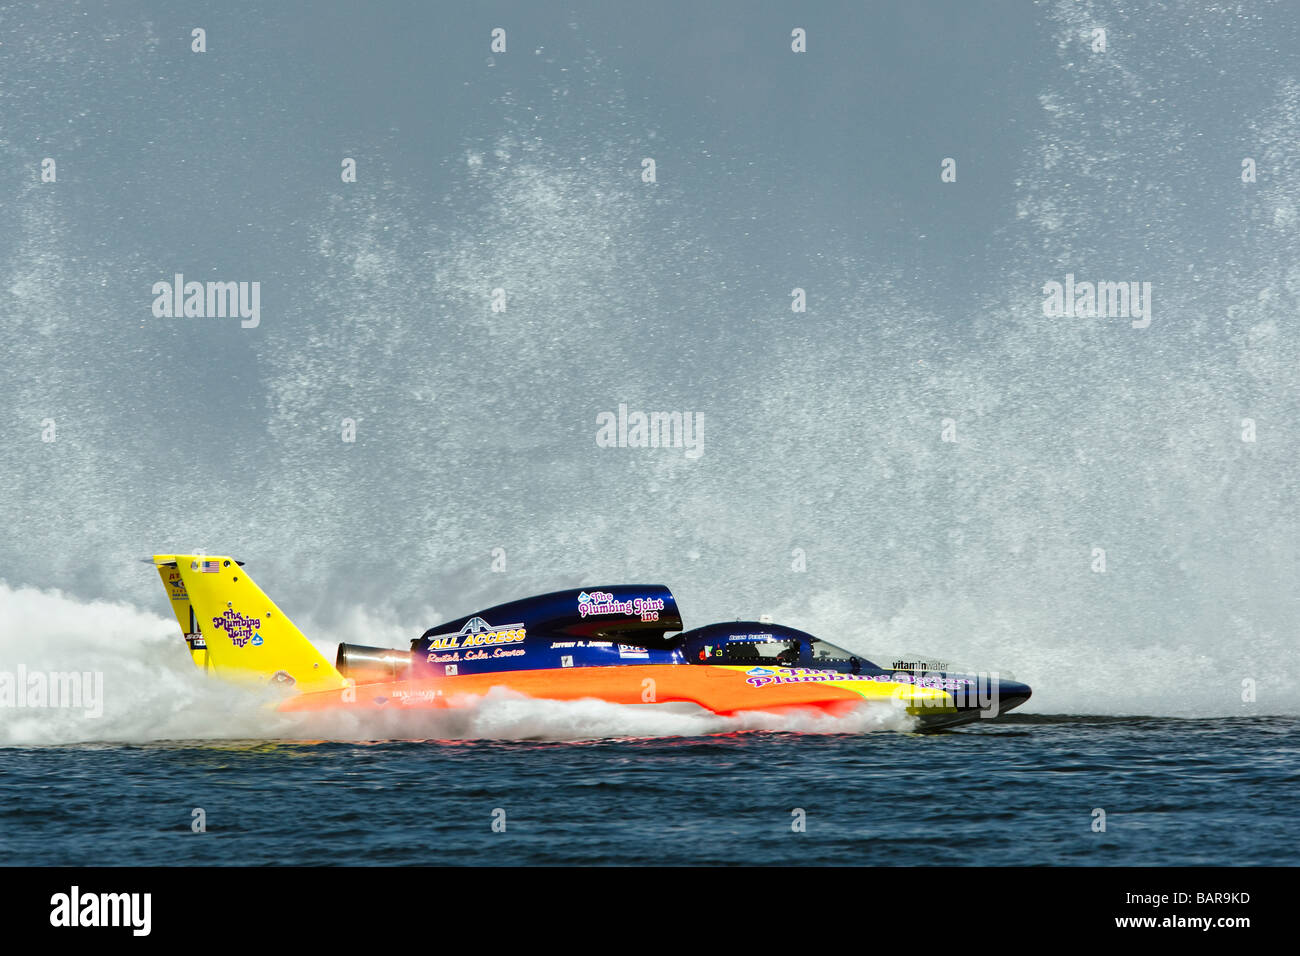 Hydroplane Racing: Brian Perkins driving his 'The Plumbing